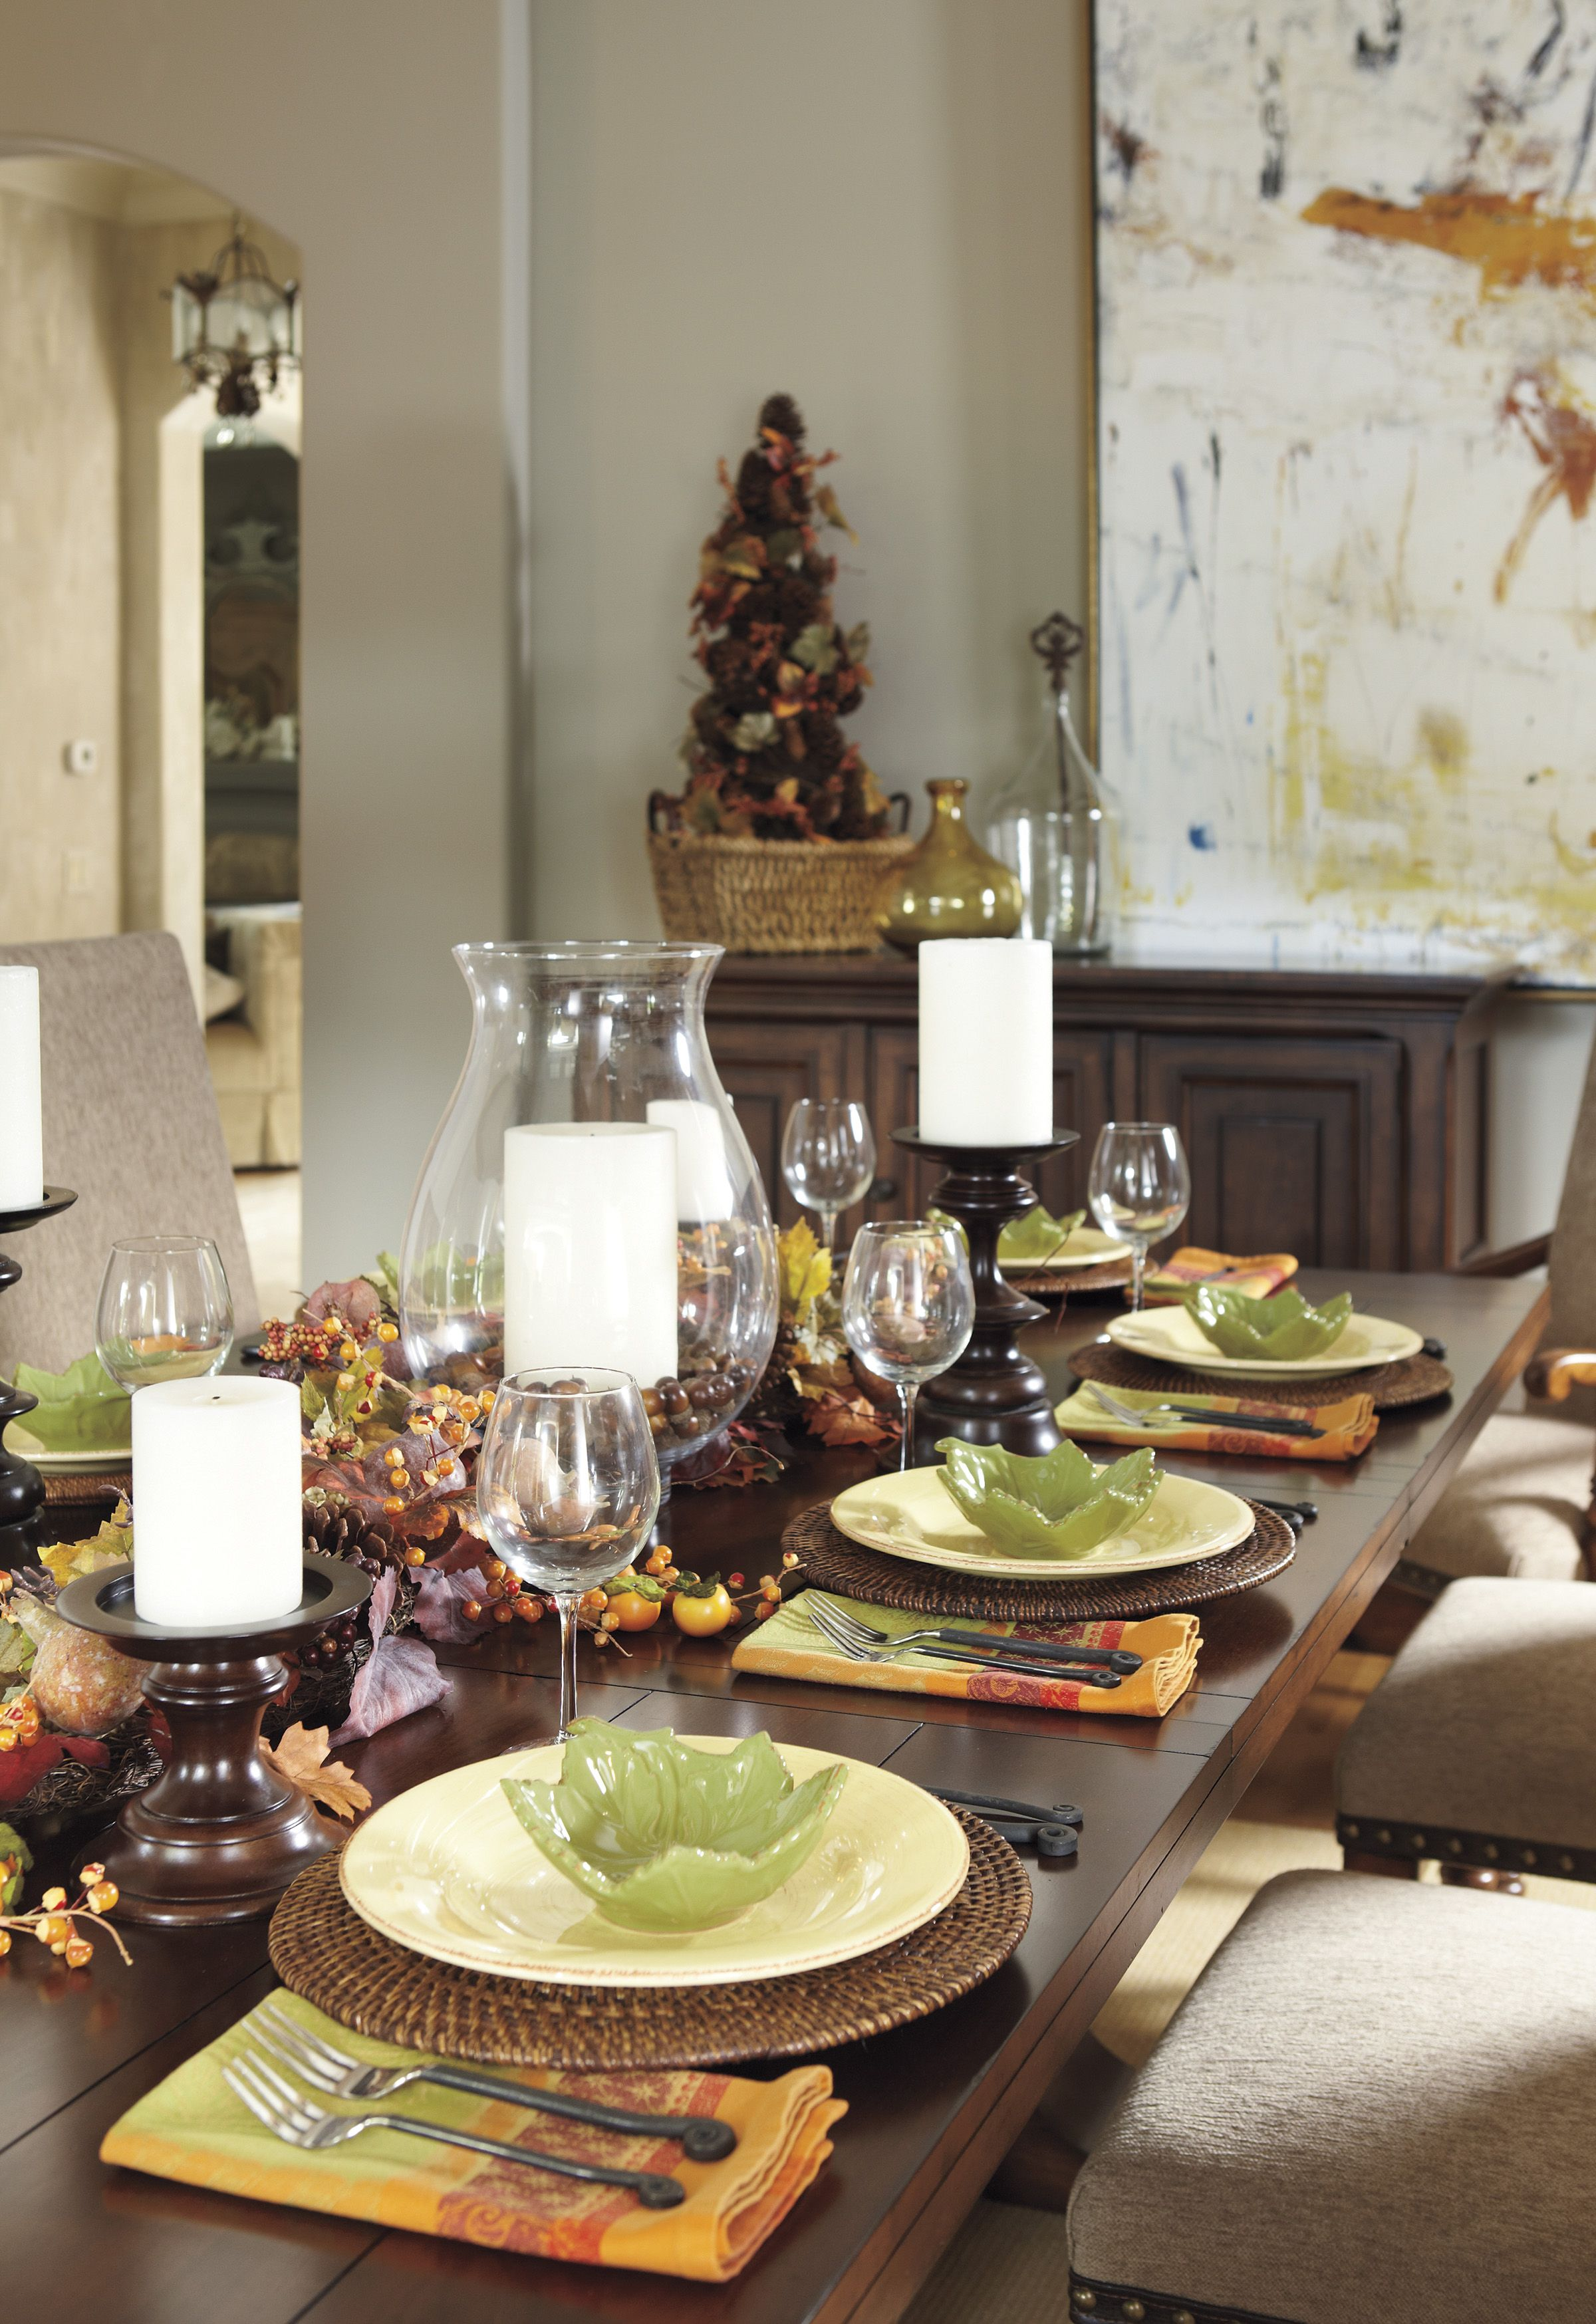 Hues Of Brown And Orange Make Decorative Table Lighting